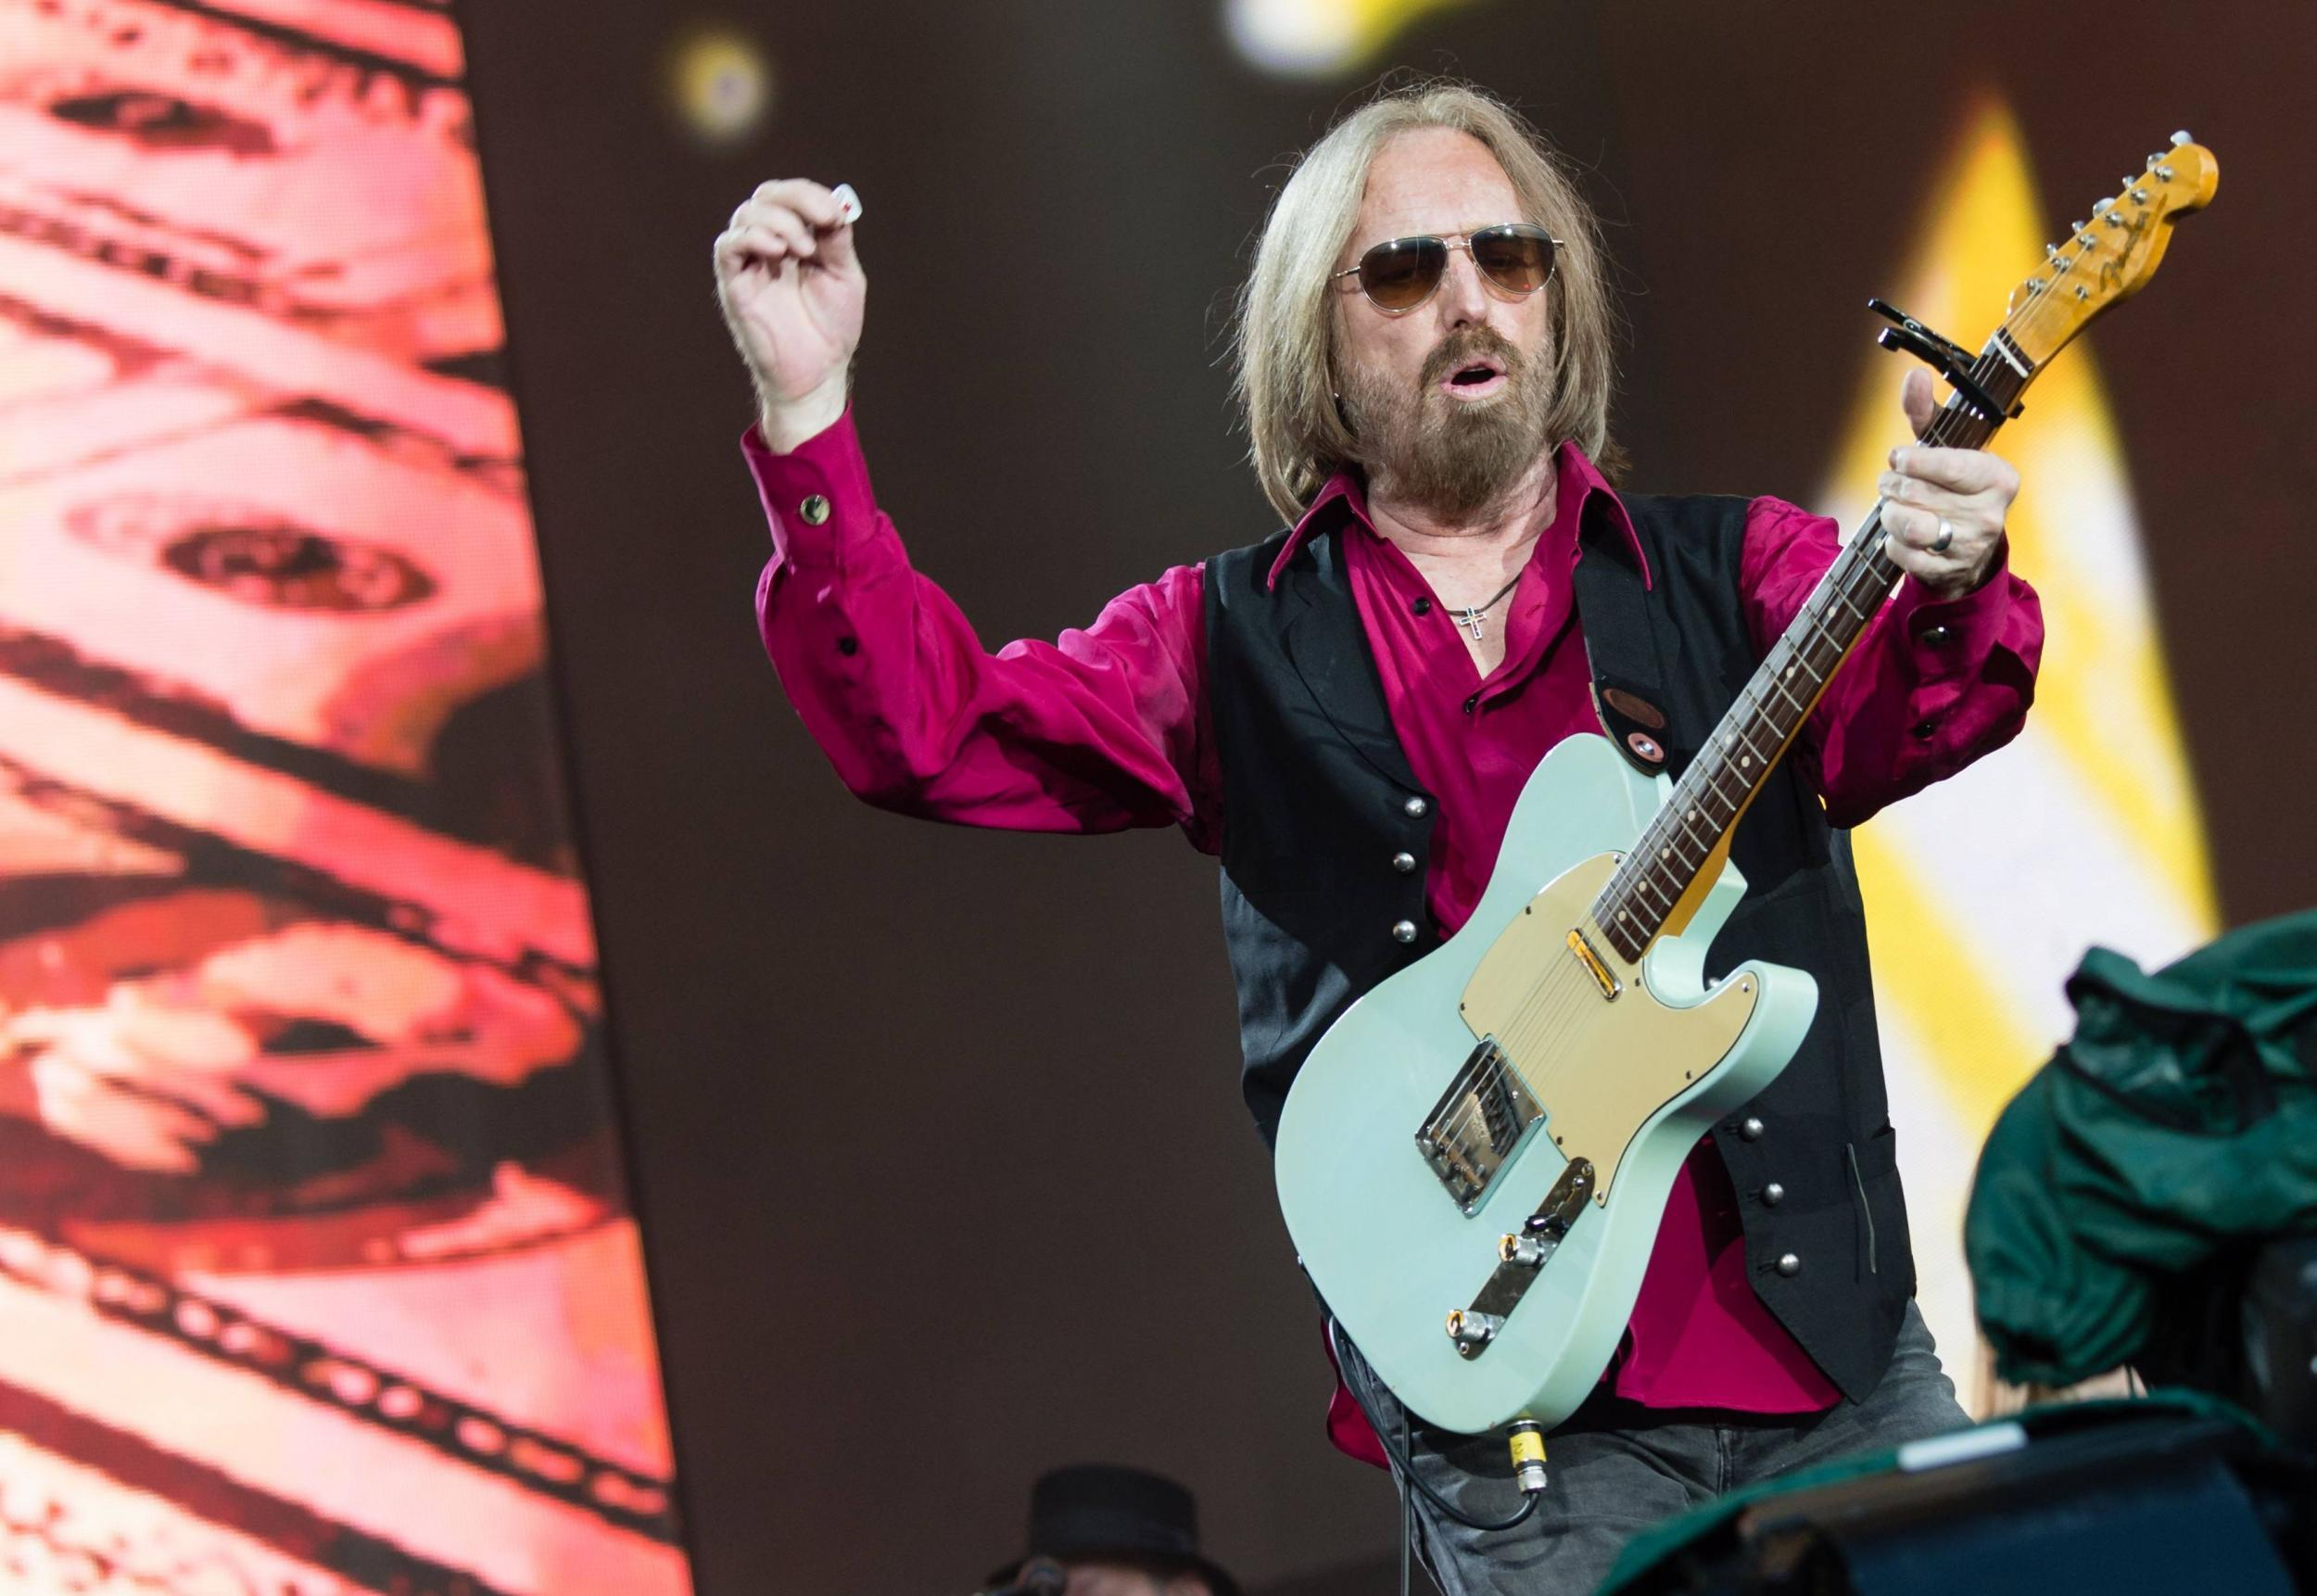 Last Dance With Mary Jane Chords Tom Petty One Of Rocks Most Distinctive And Enduring Voices The